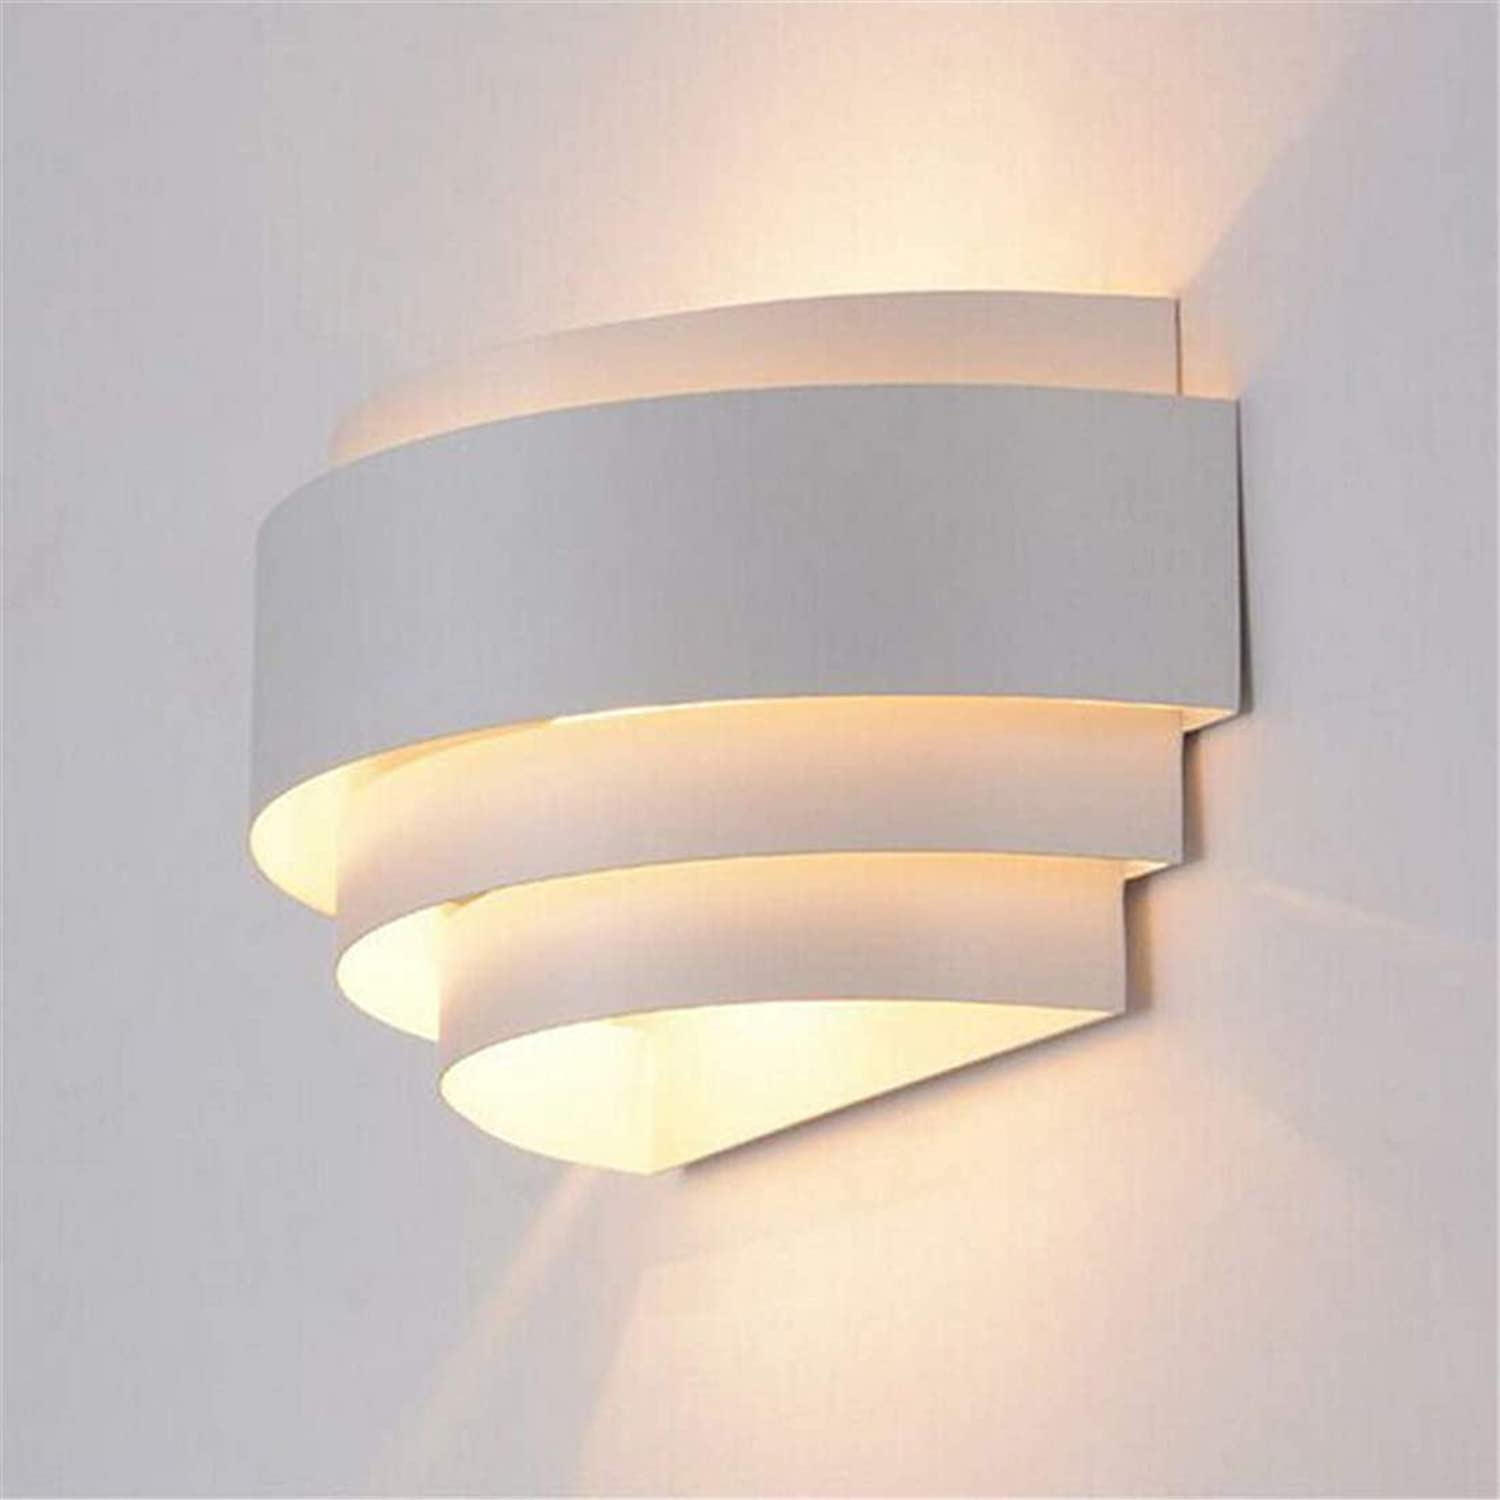 Lichtmodern Minimalist Led Wrought Iron Wall Lamp Living Room Bedroom Bedside Round Wall Lamp